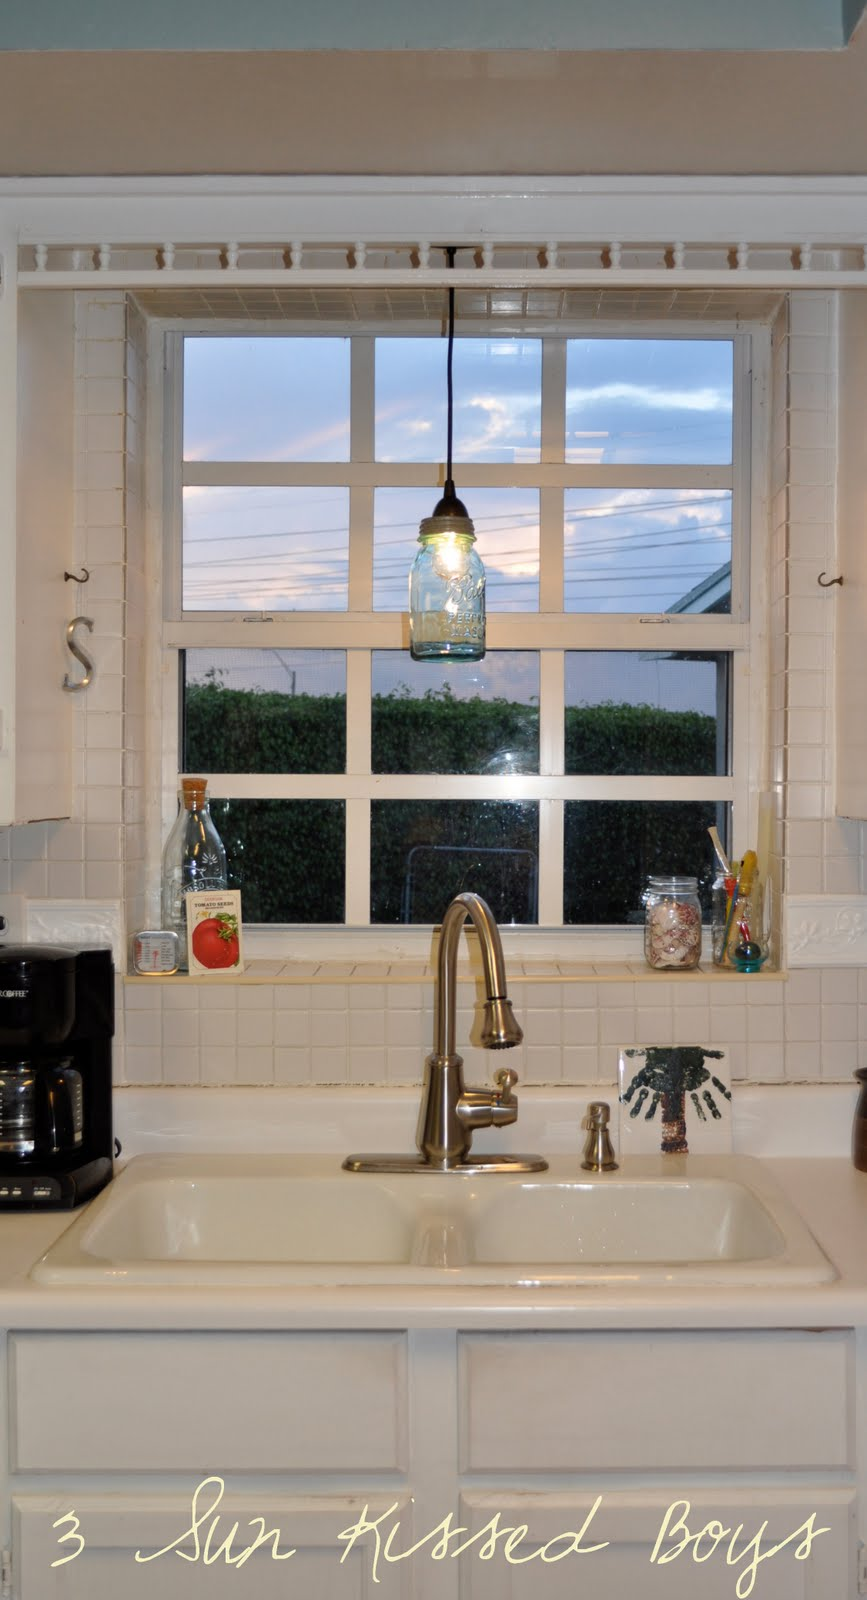 Pendant Light In Front Of Kitchen Sink Window